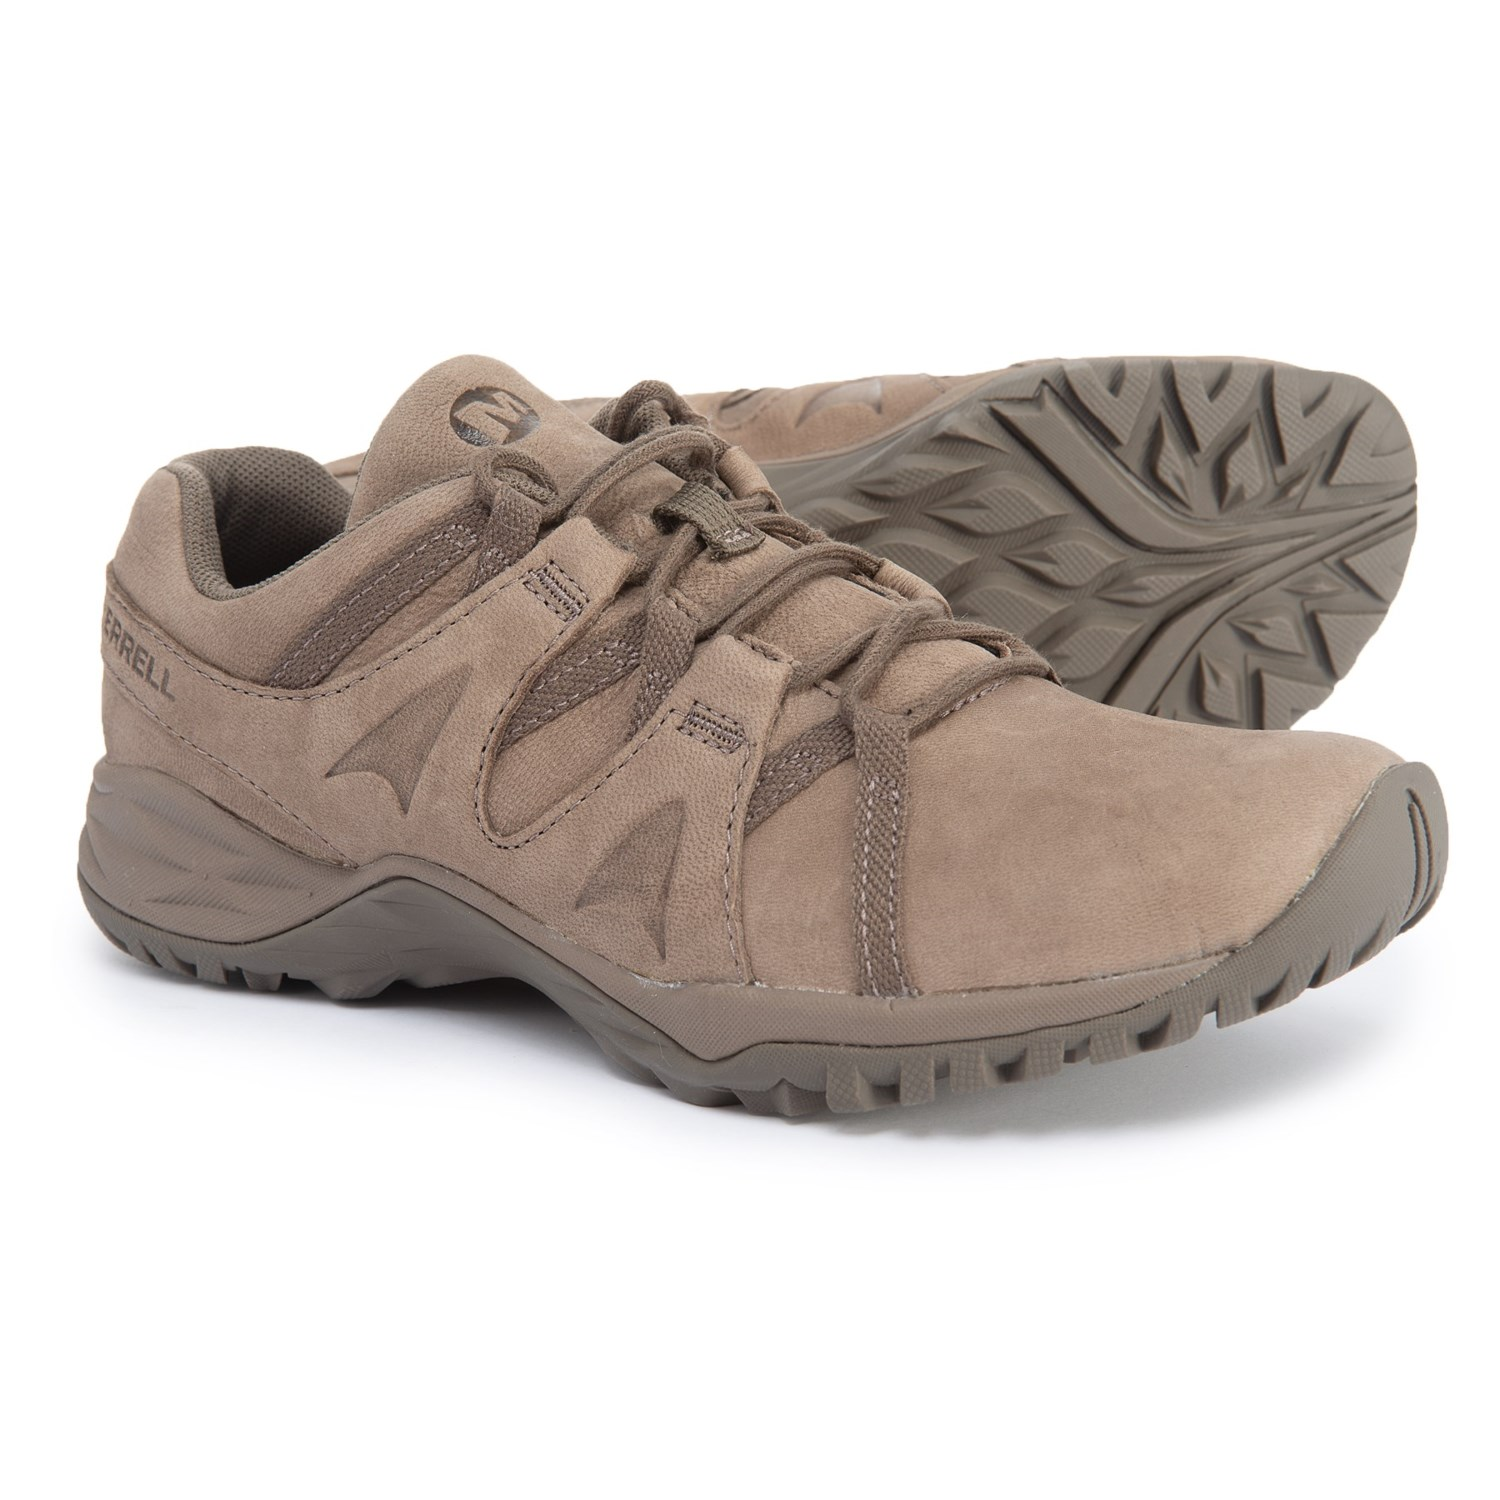 f4dfd72e75 Merrell Siren Guided Leather Q2 Shoes (For Women)